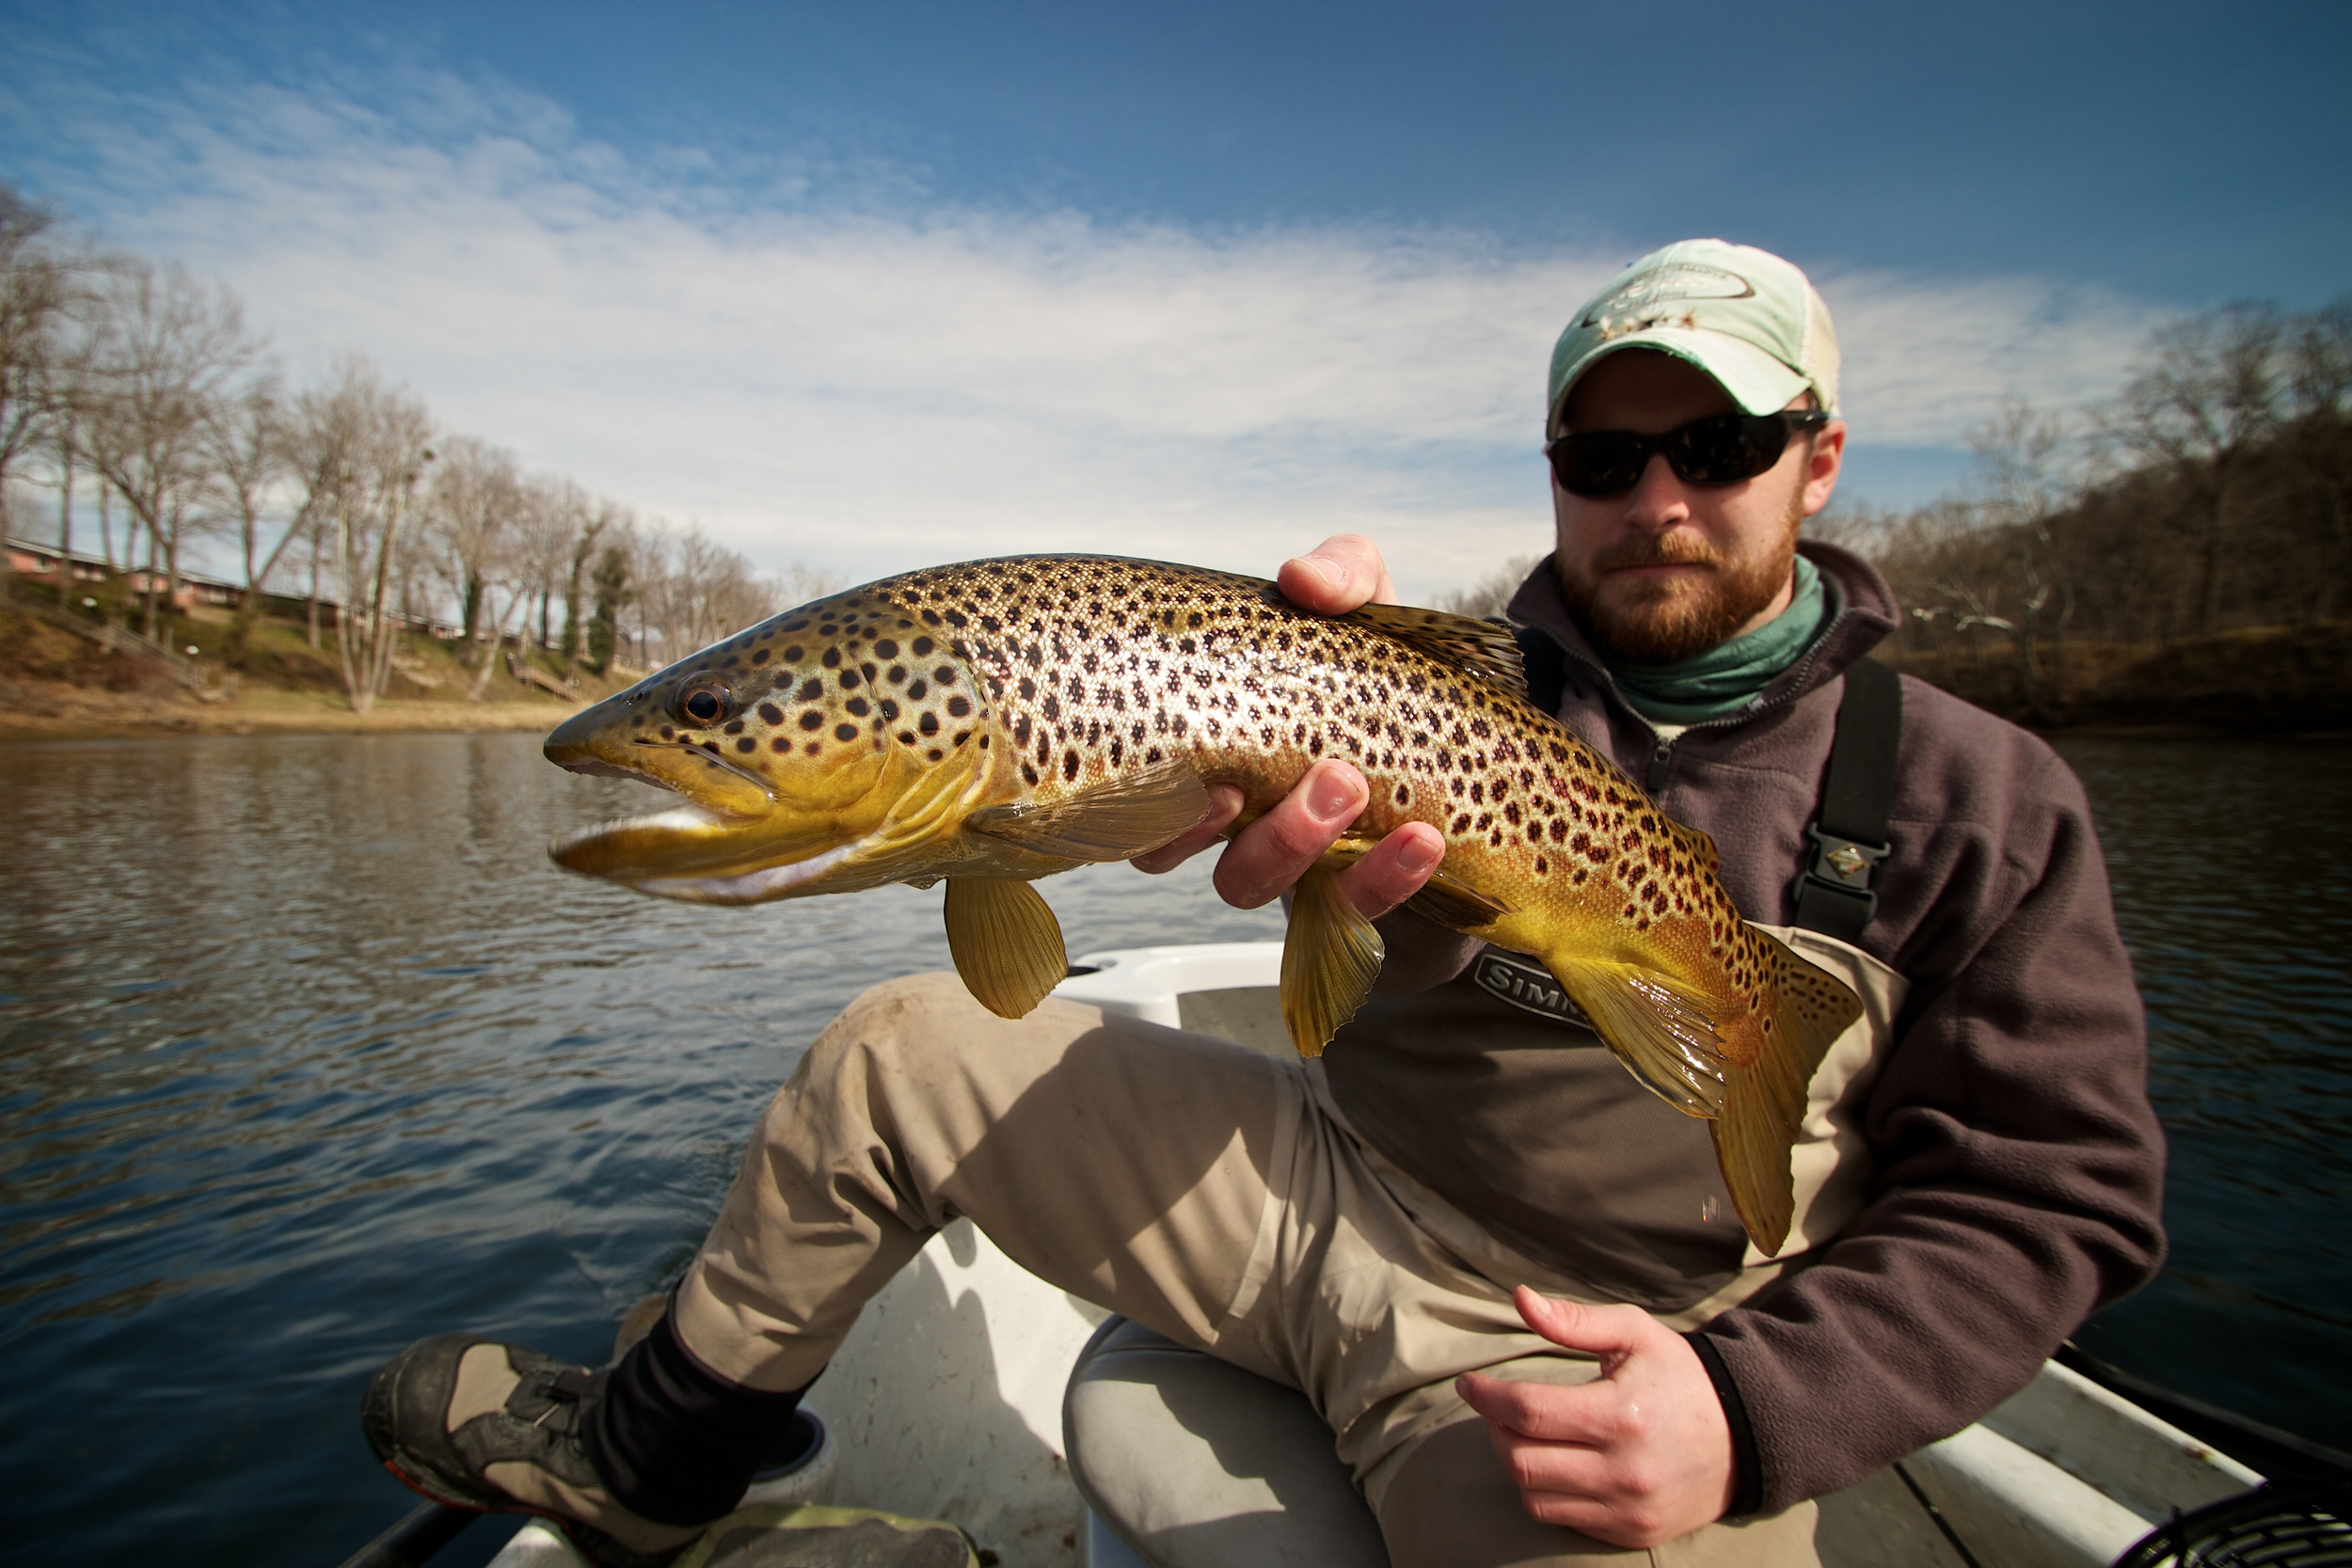 Chance with a solid brown